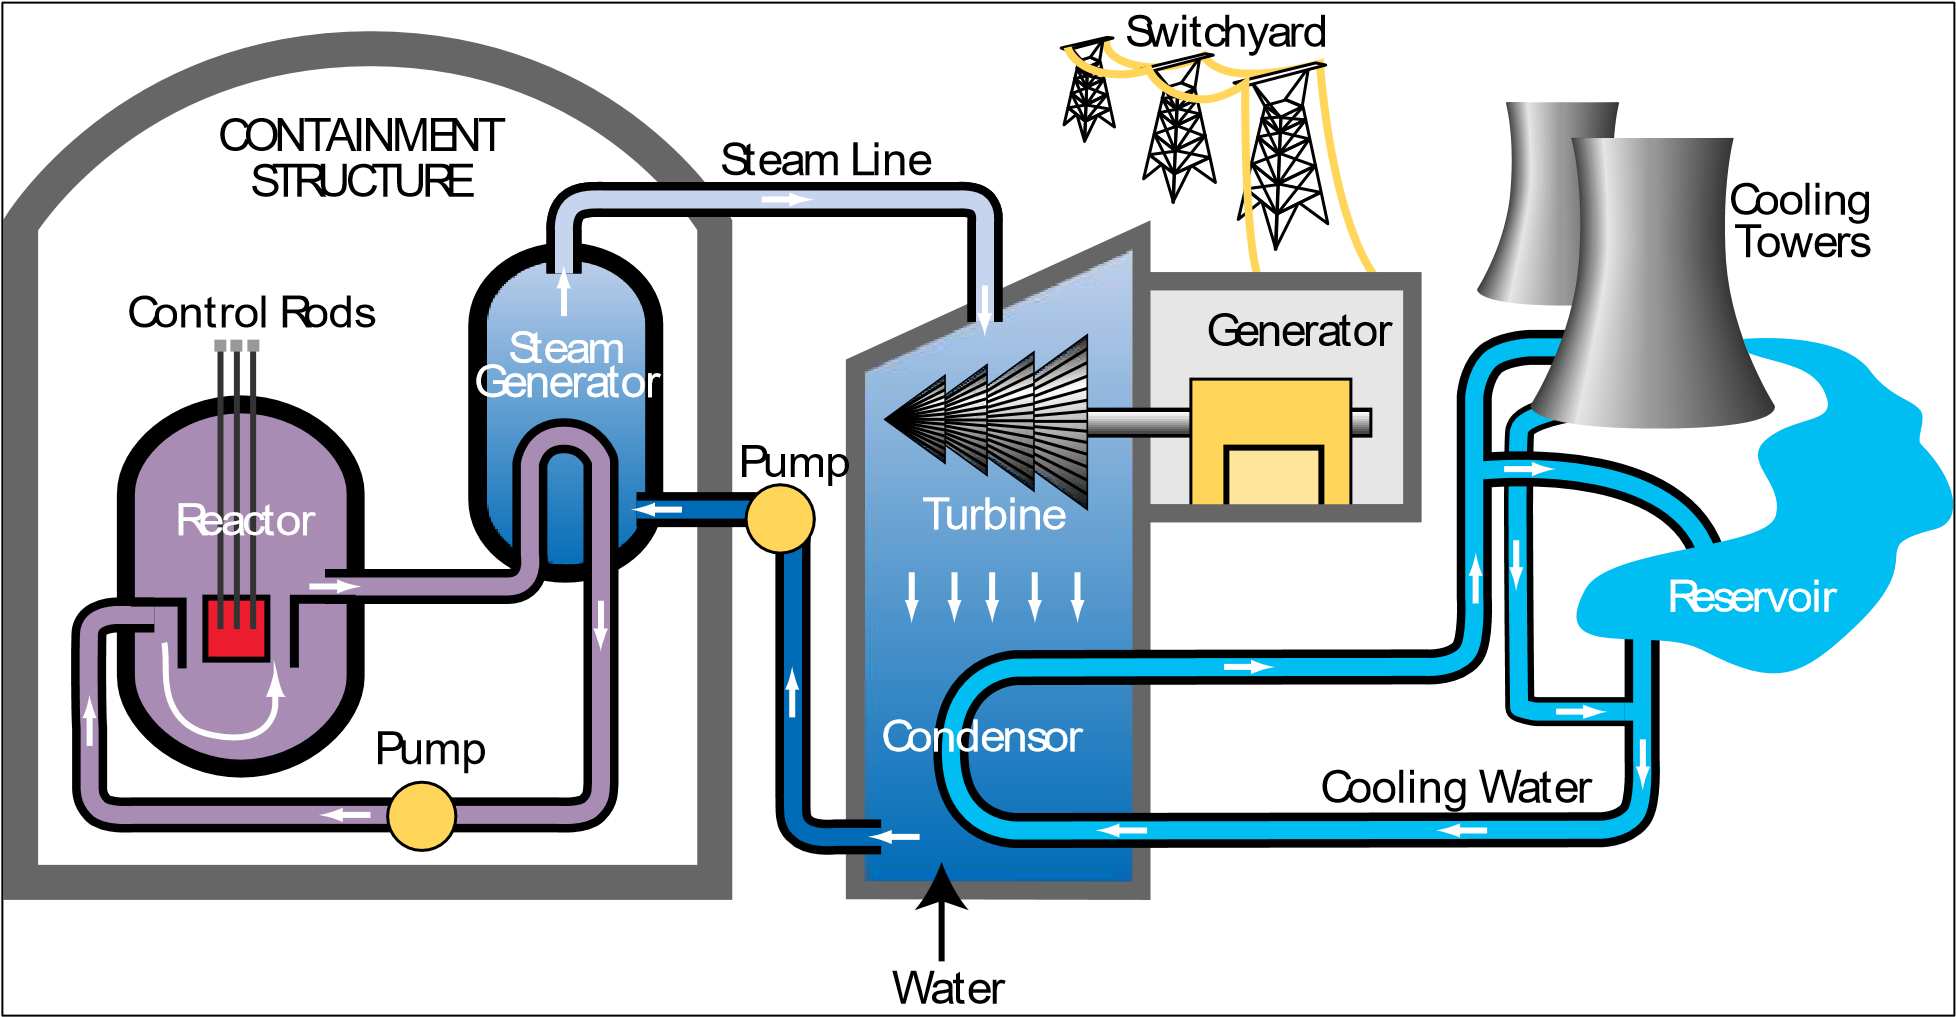 A schematic diagram of a pressurized water reactor (PWR).